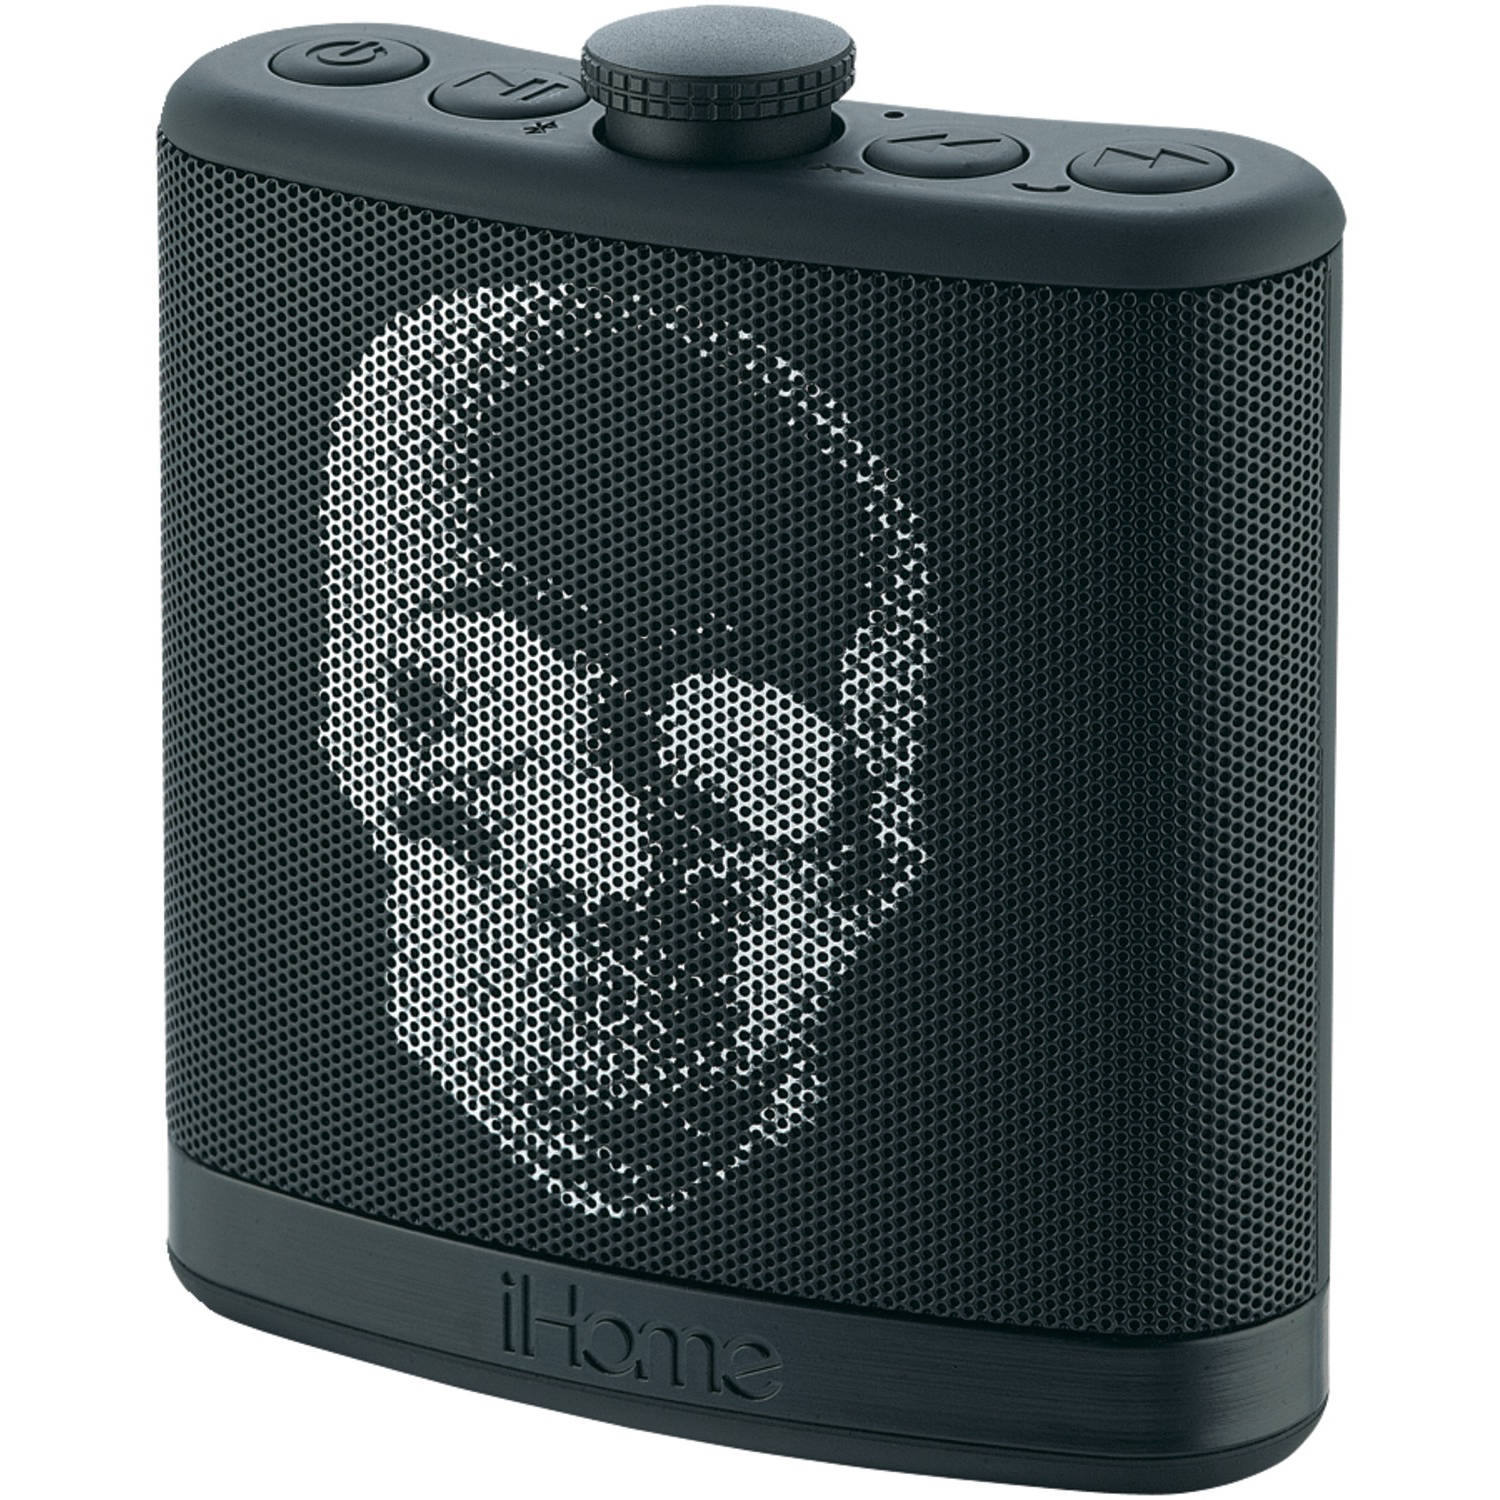 iHome Rechargeable Flask-Shaped Bluetooth Stereo Speaker with Custom Sound Case, Black Skull - Walmart.com